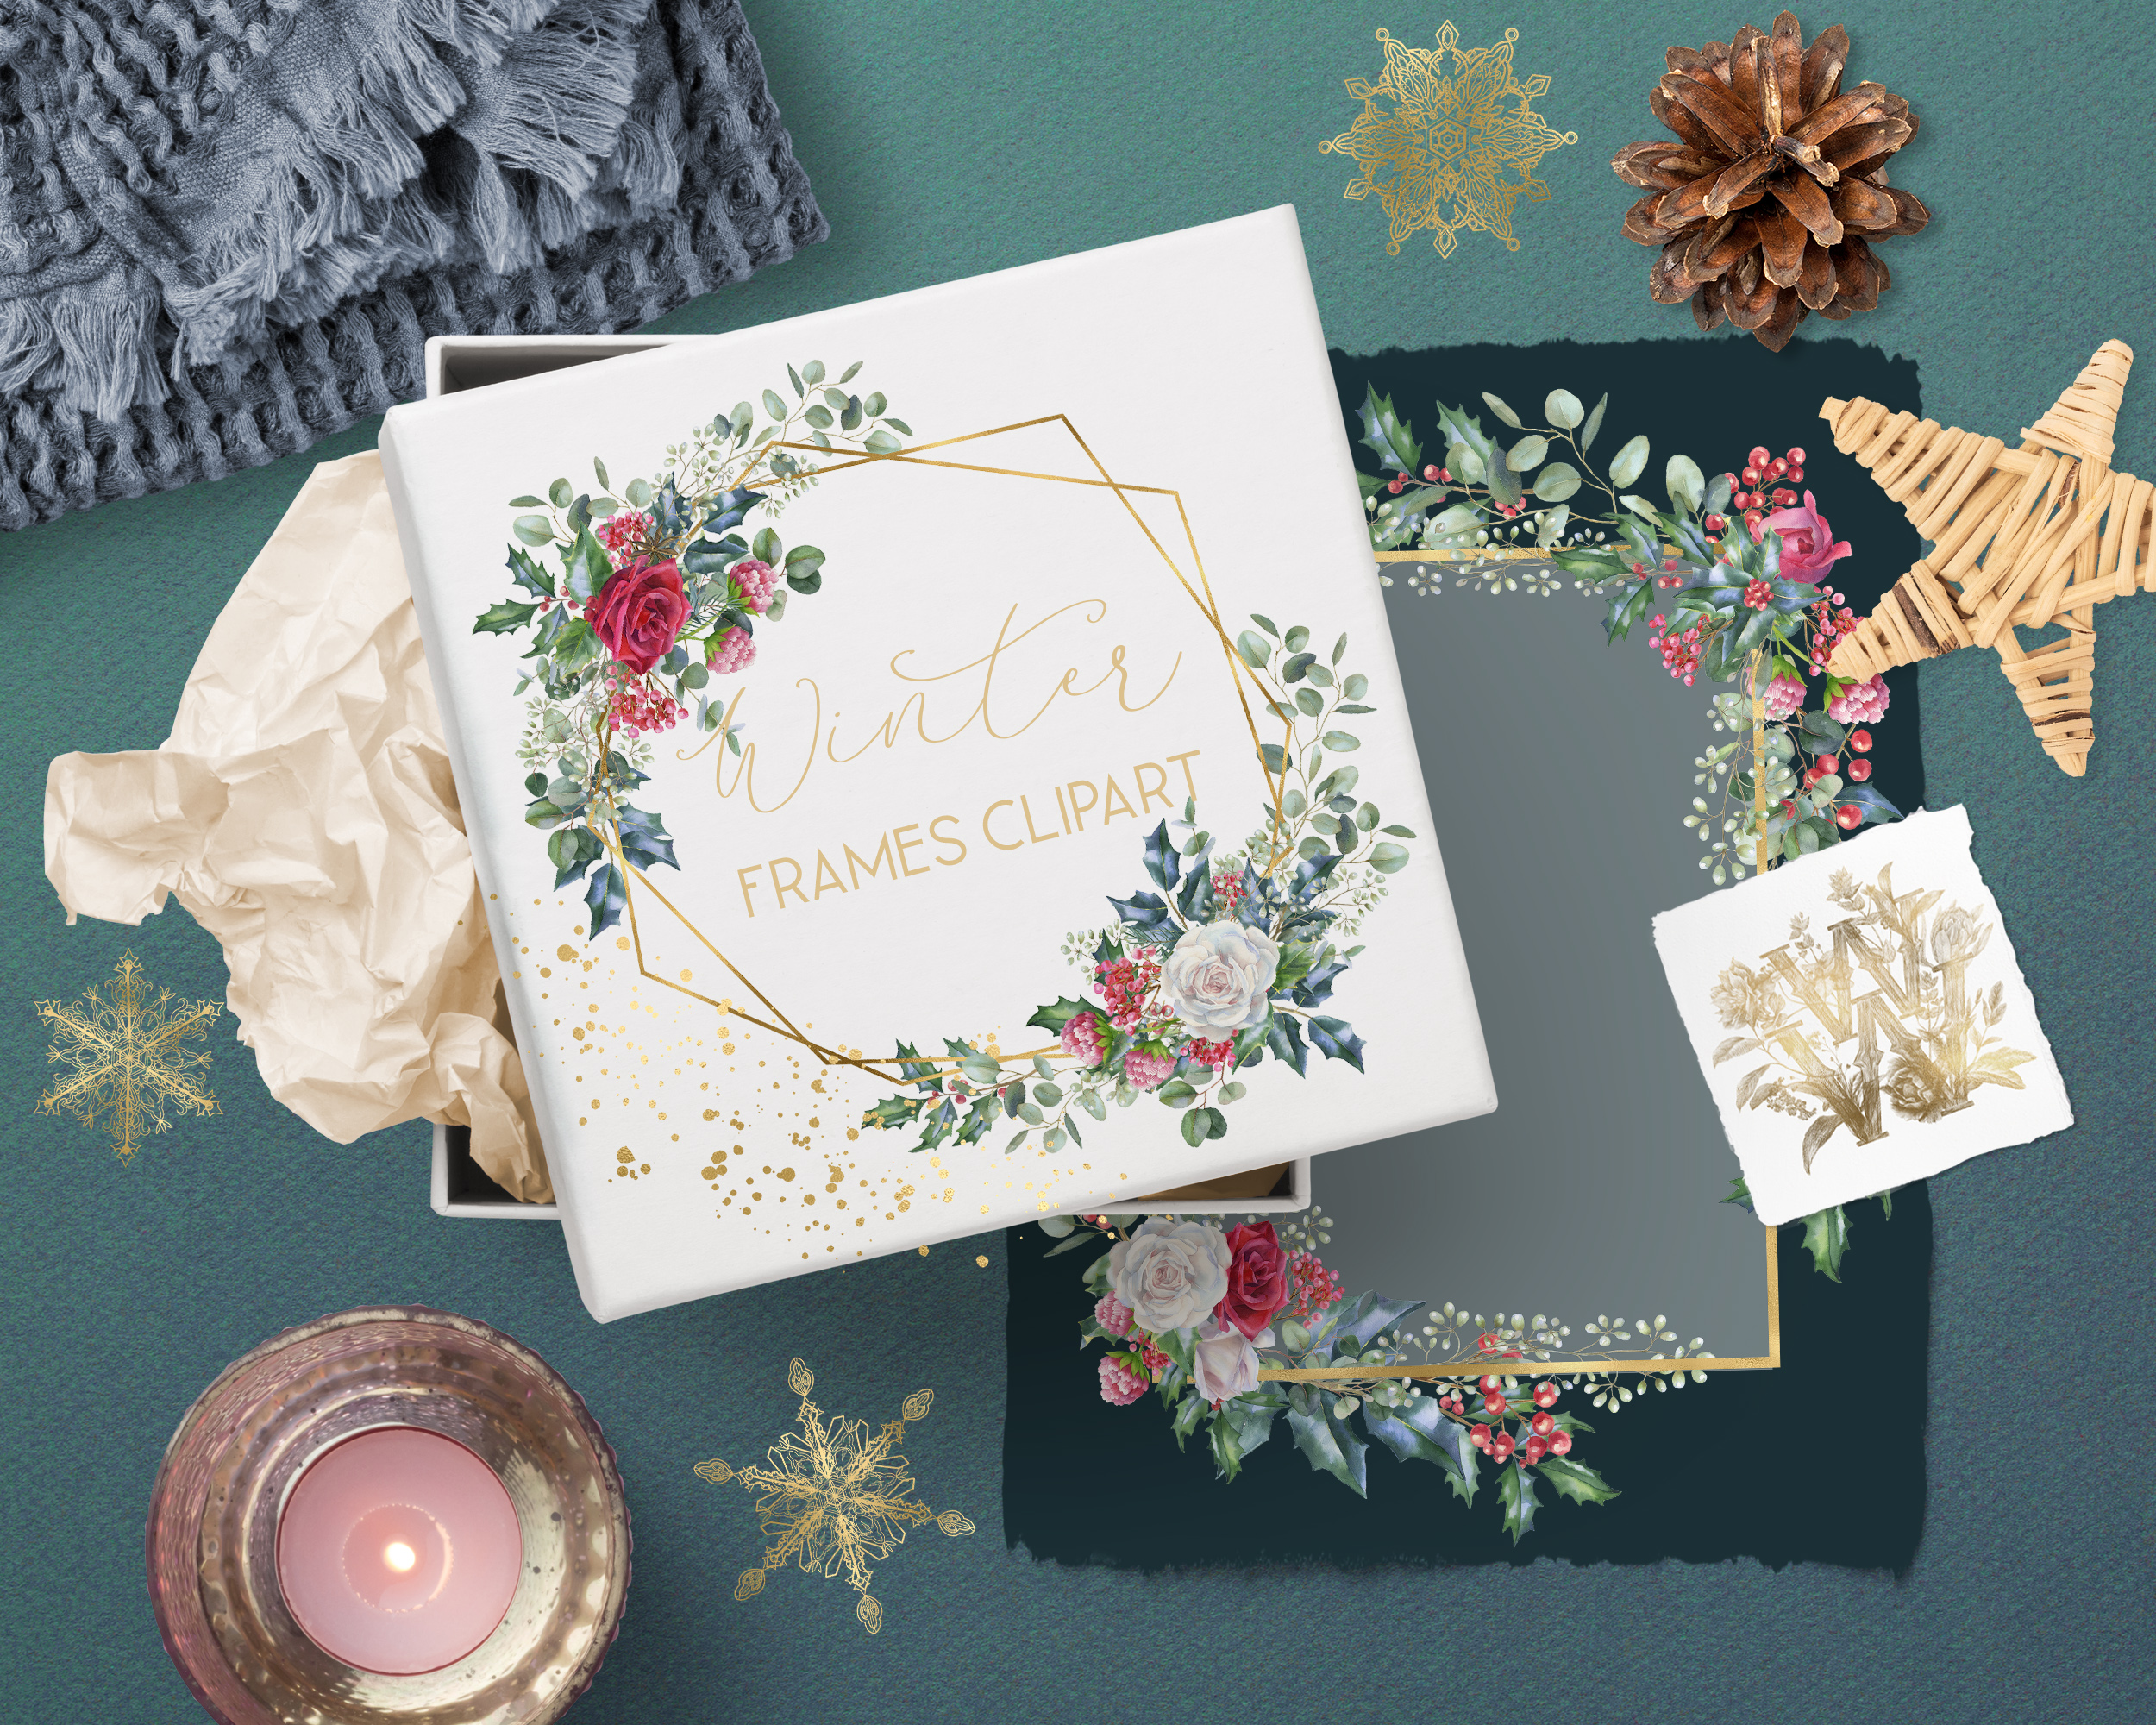 Winter frames clipart, watercolor Christmas borders png example image 4